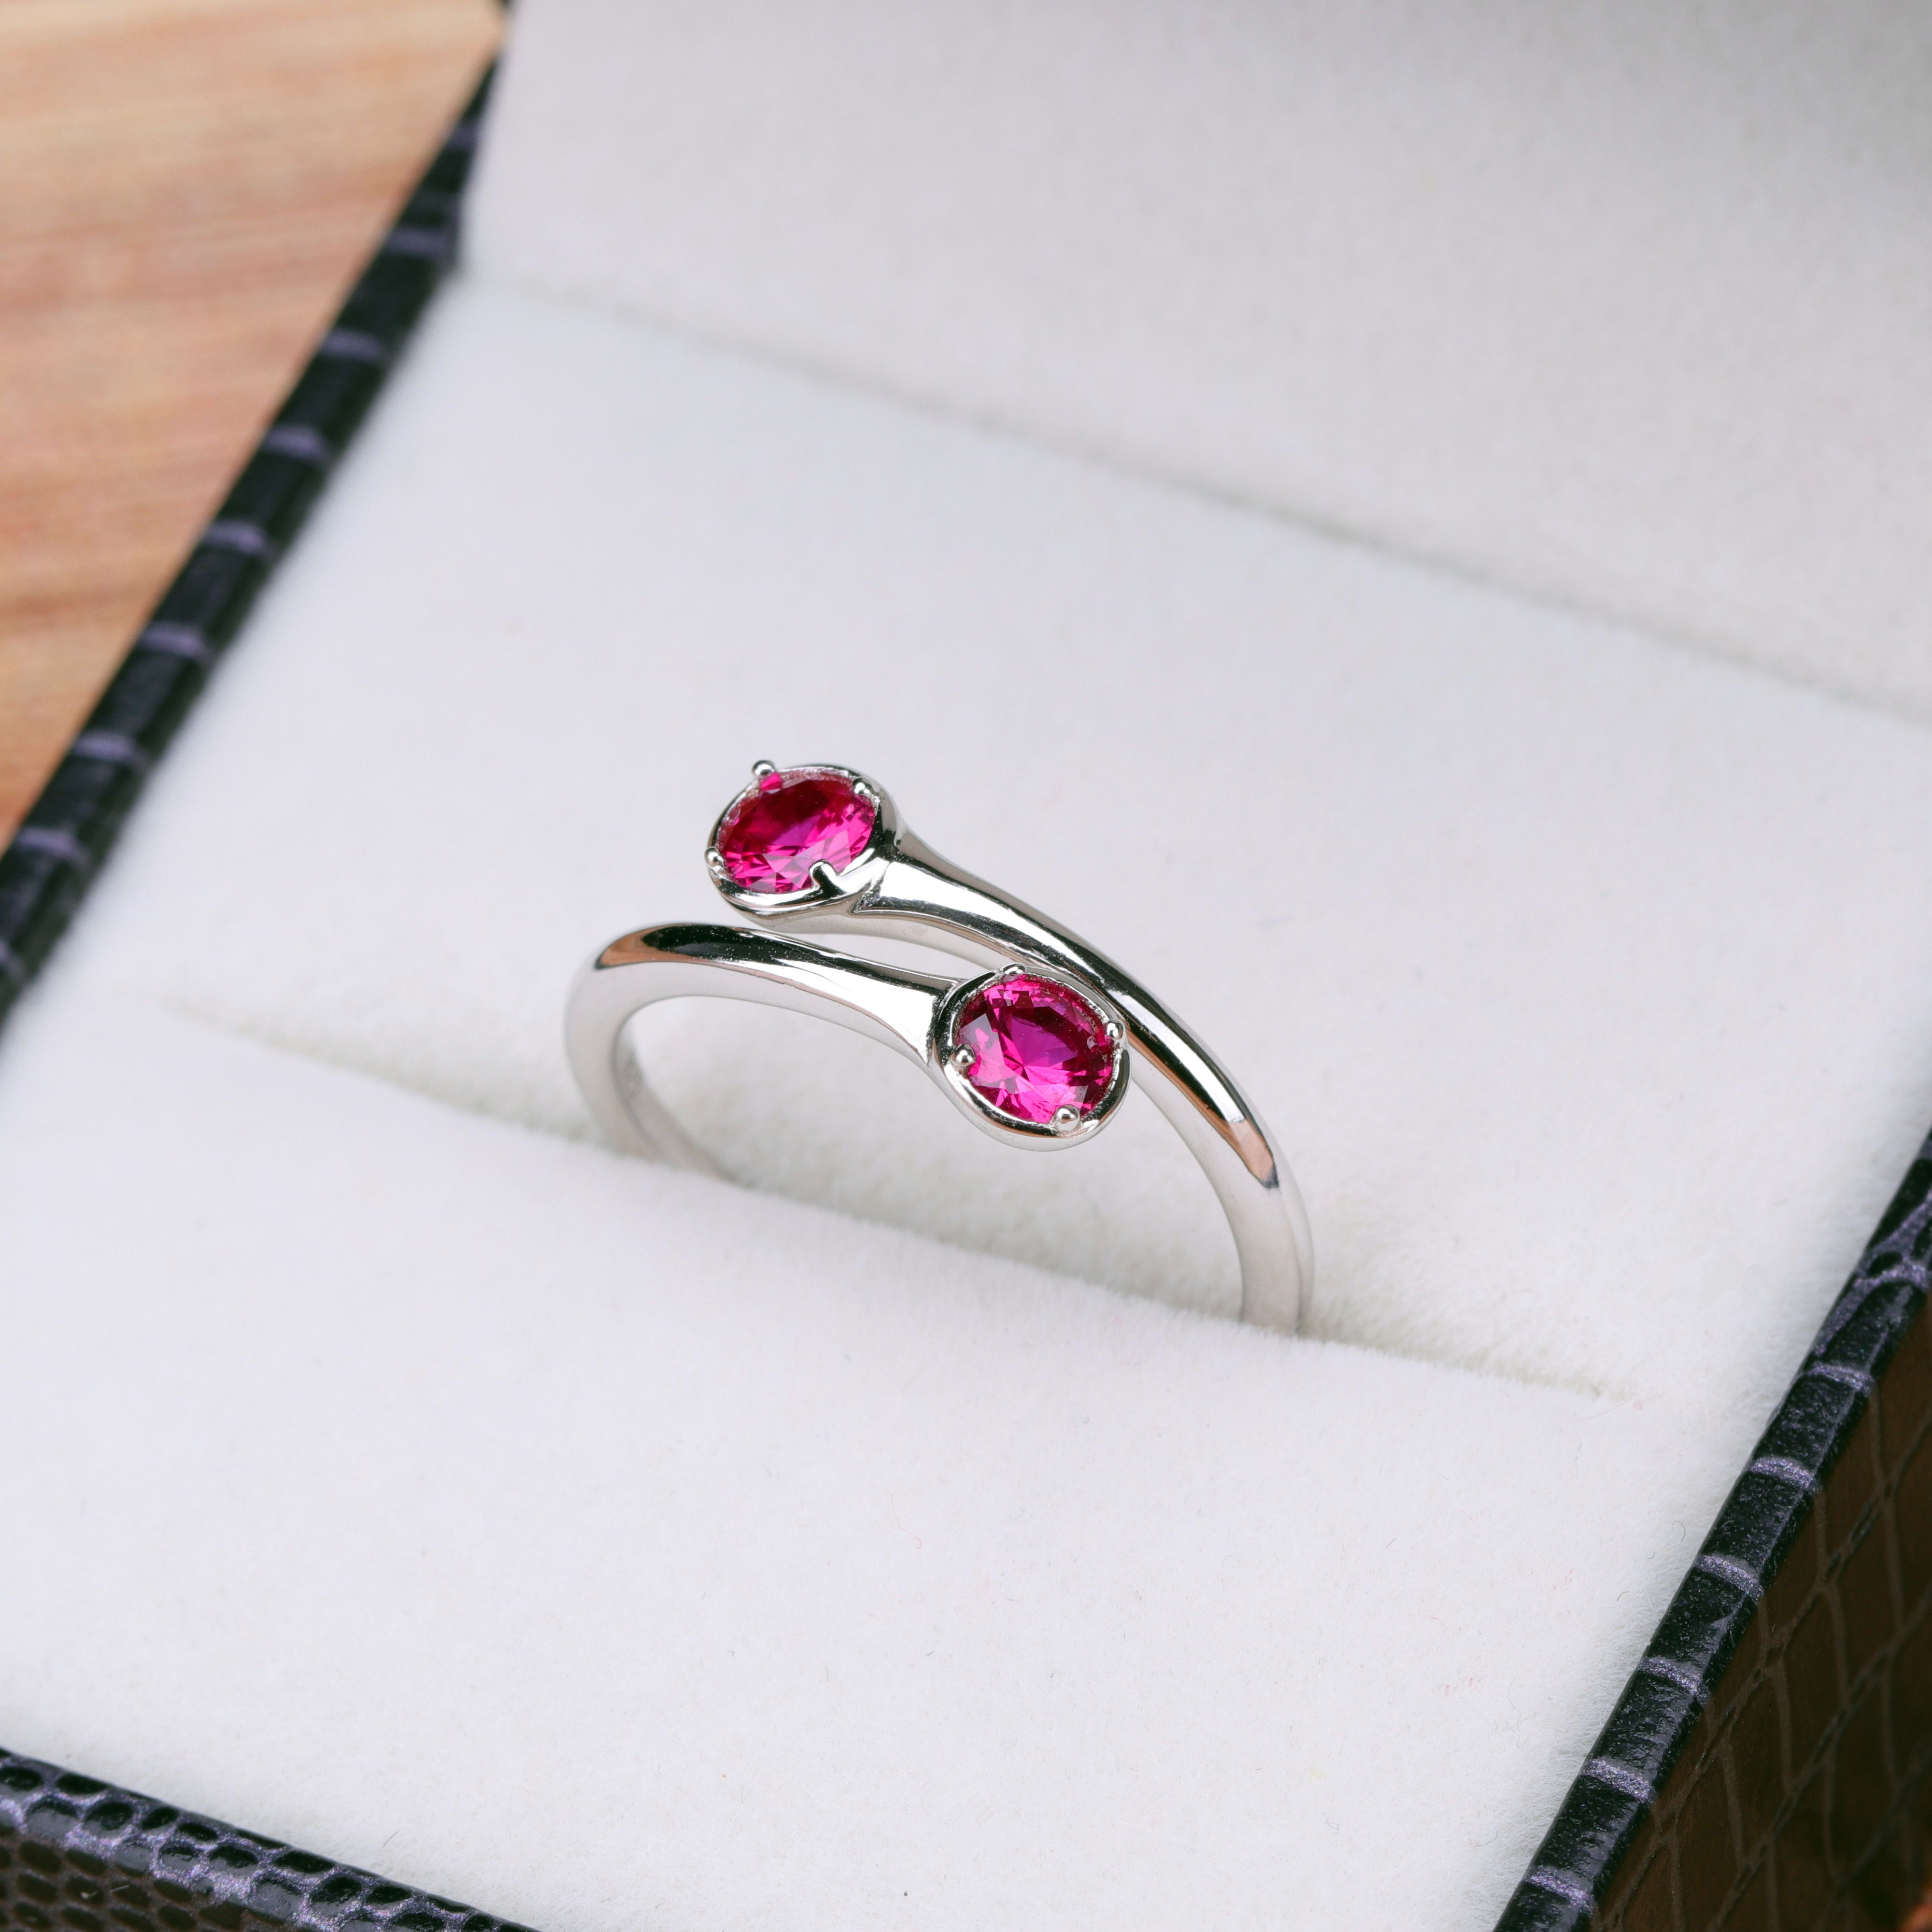 Engagement Ring Dog Chew Toy